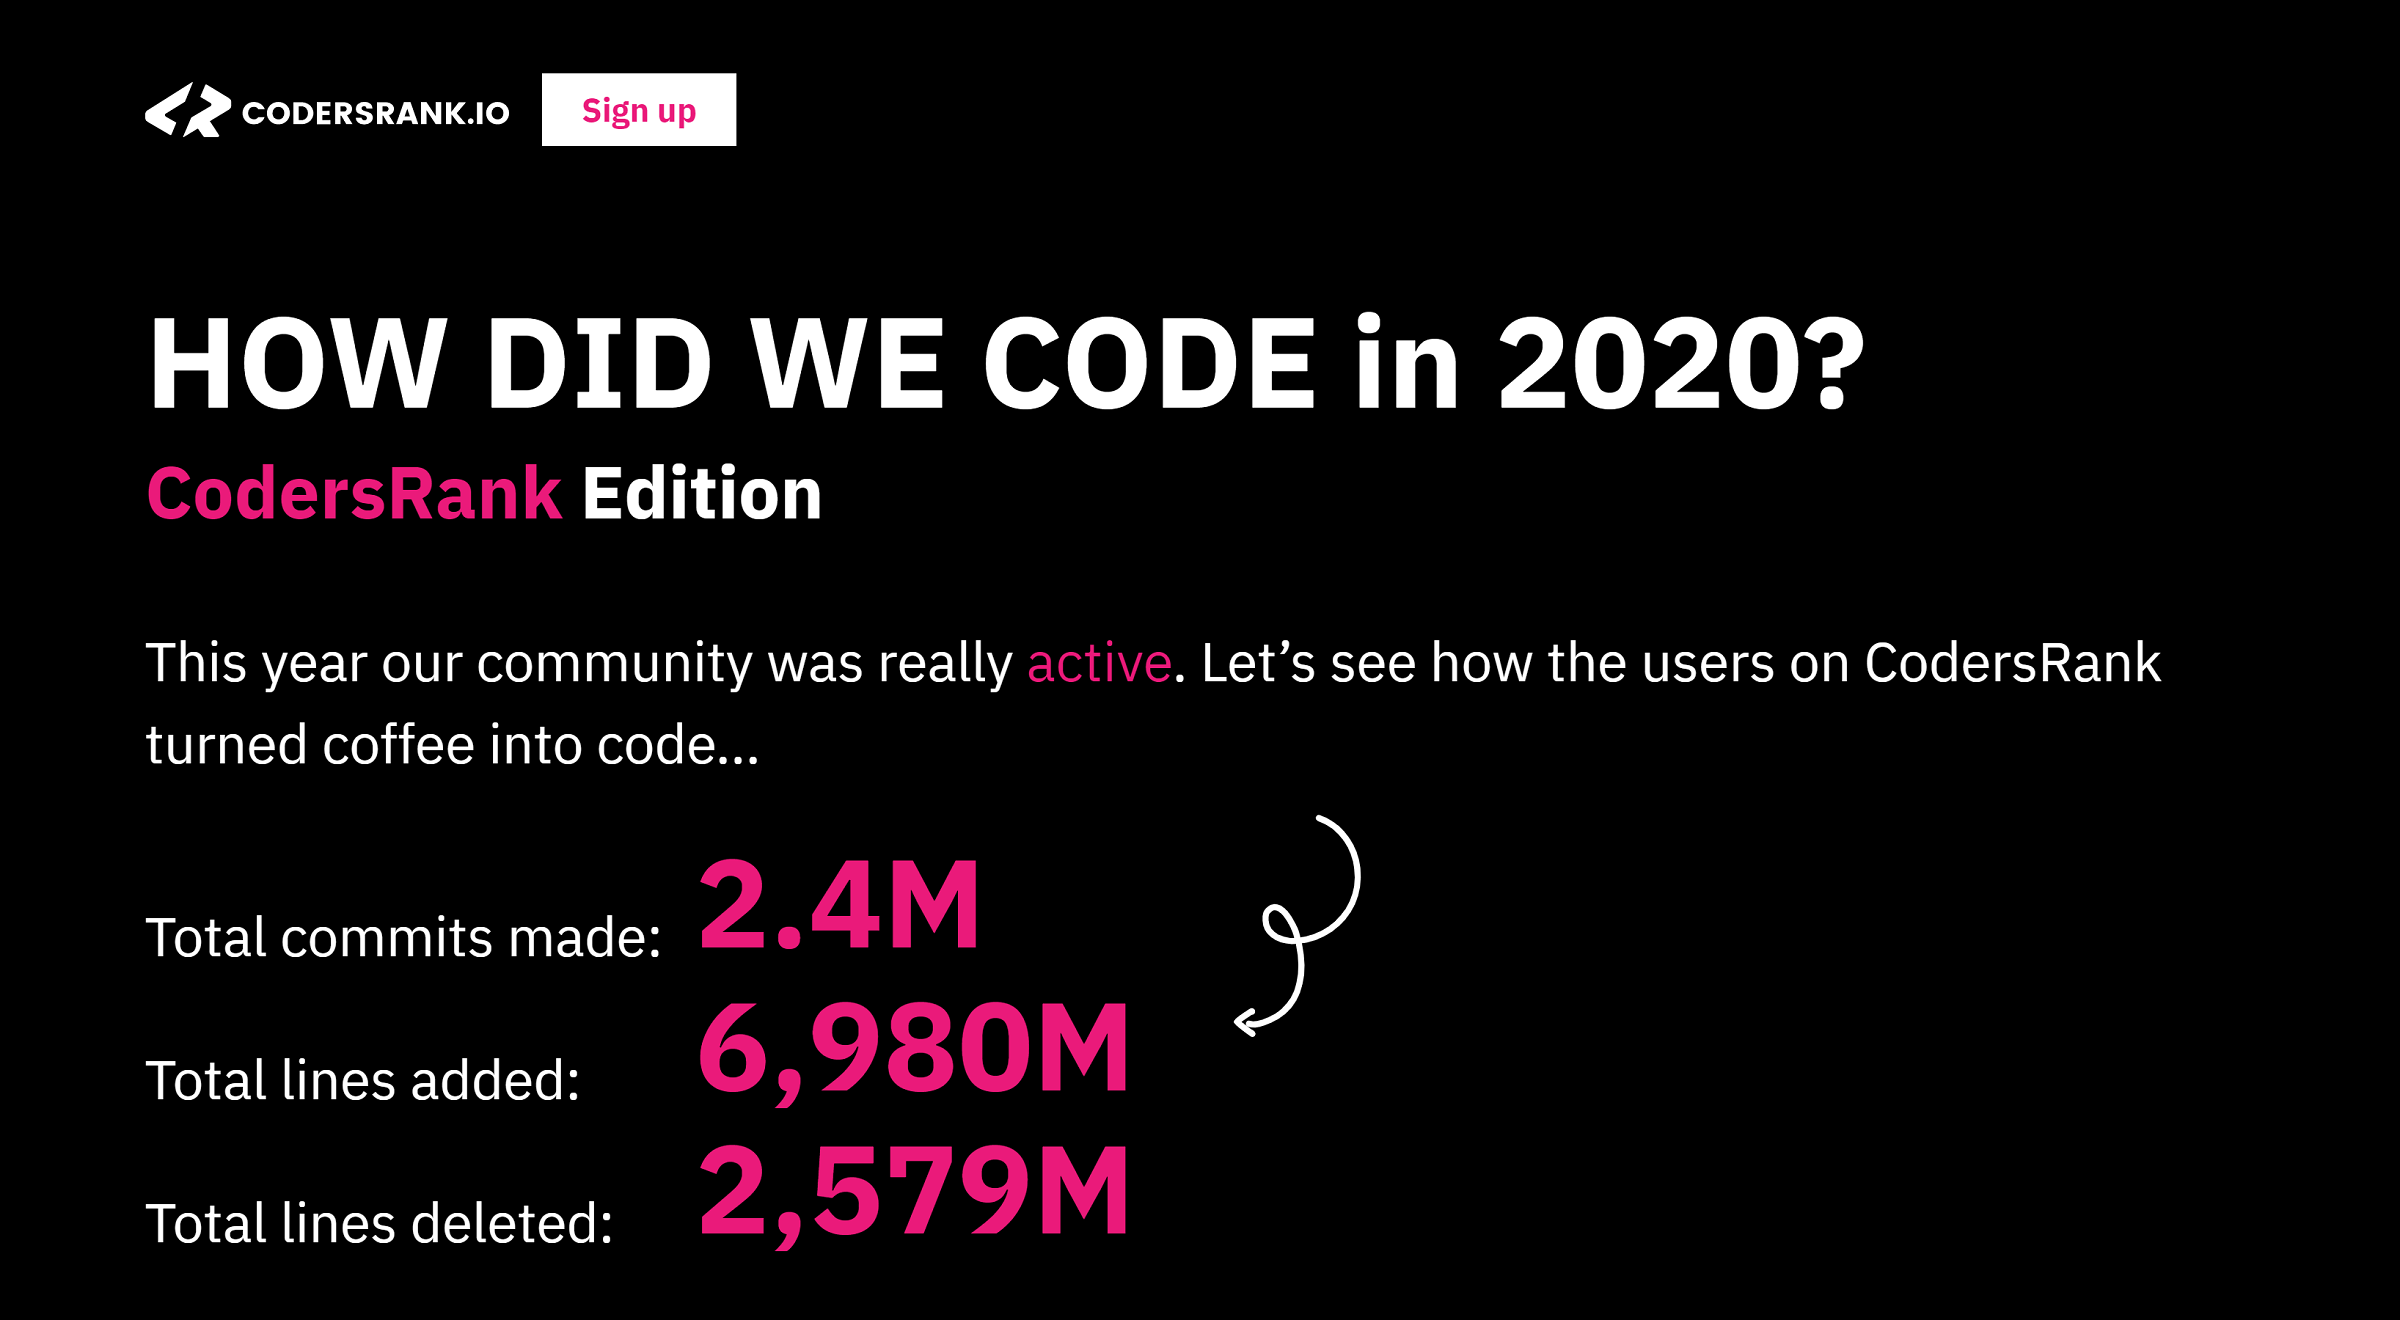 2020 Year in Review by CodersRank: See the Coding Stats for the Year